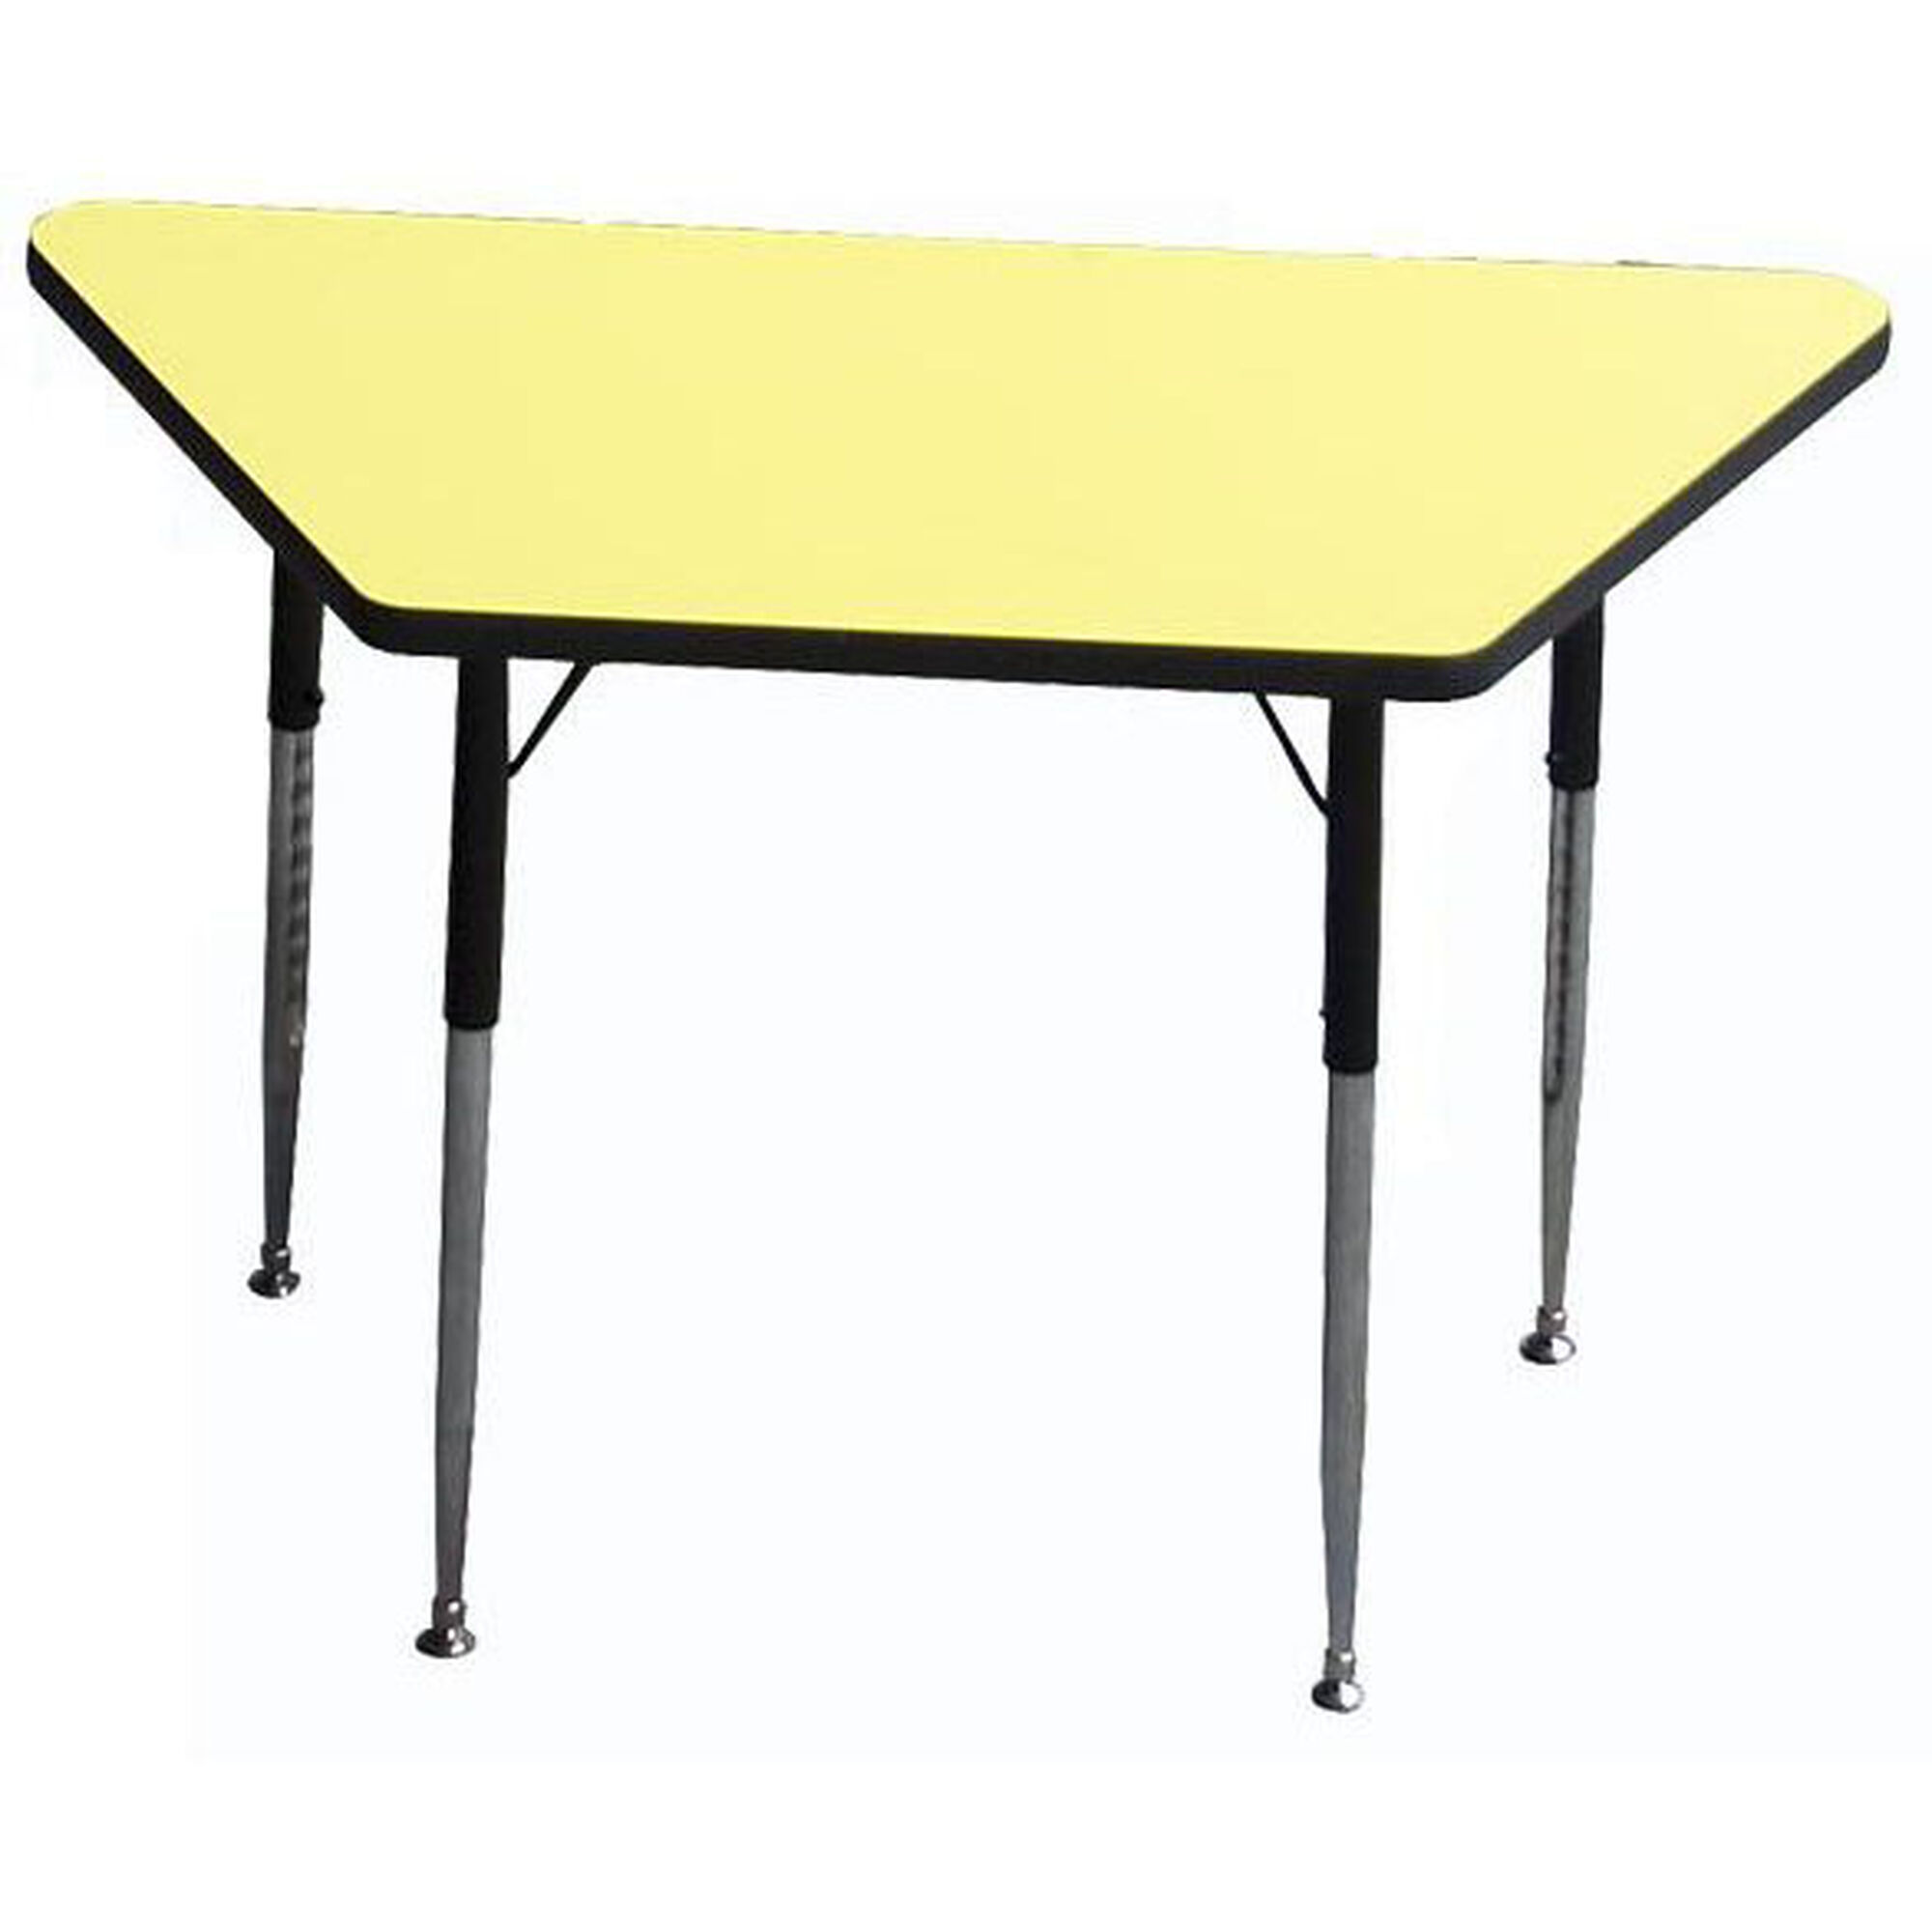 Allied plastics co trapezoid shaped particleboard activity for Trapezoid table